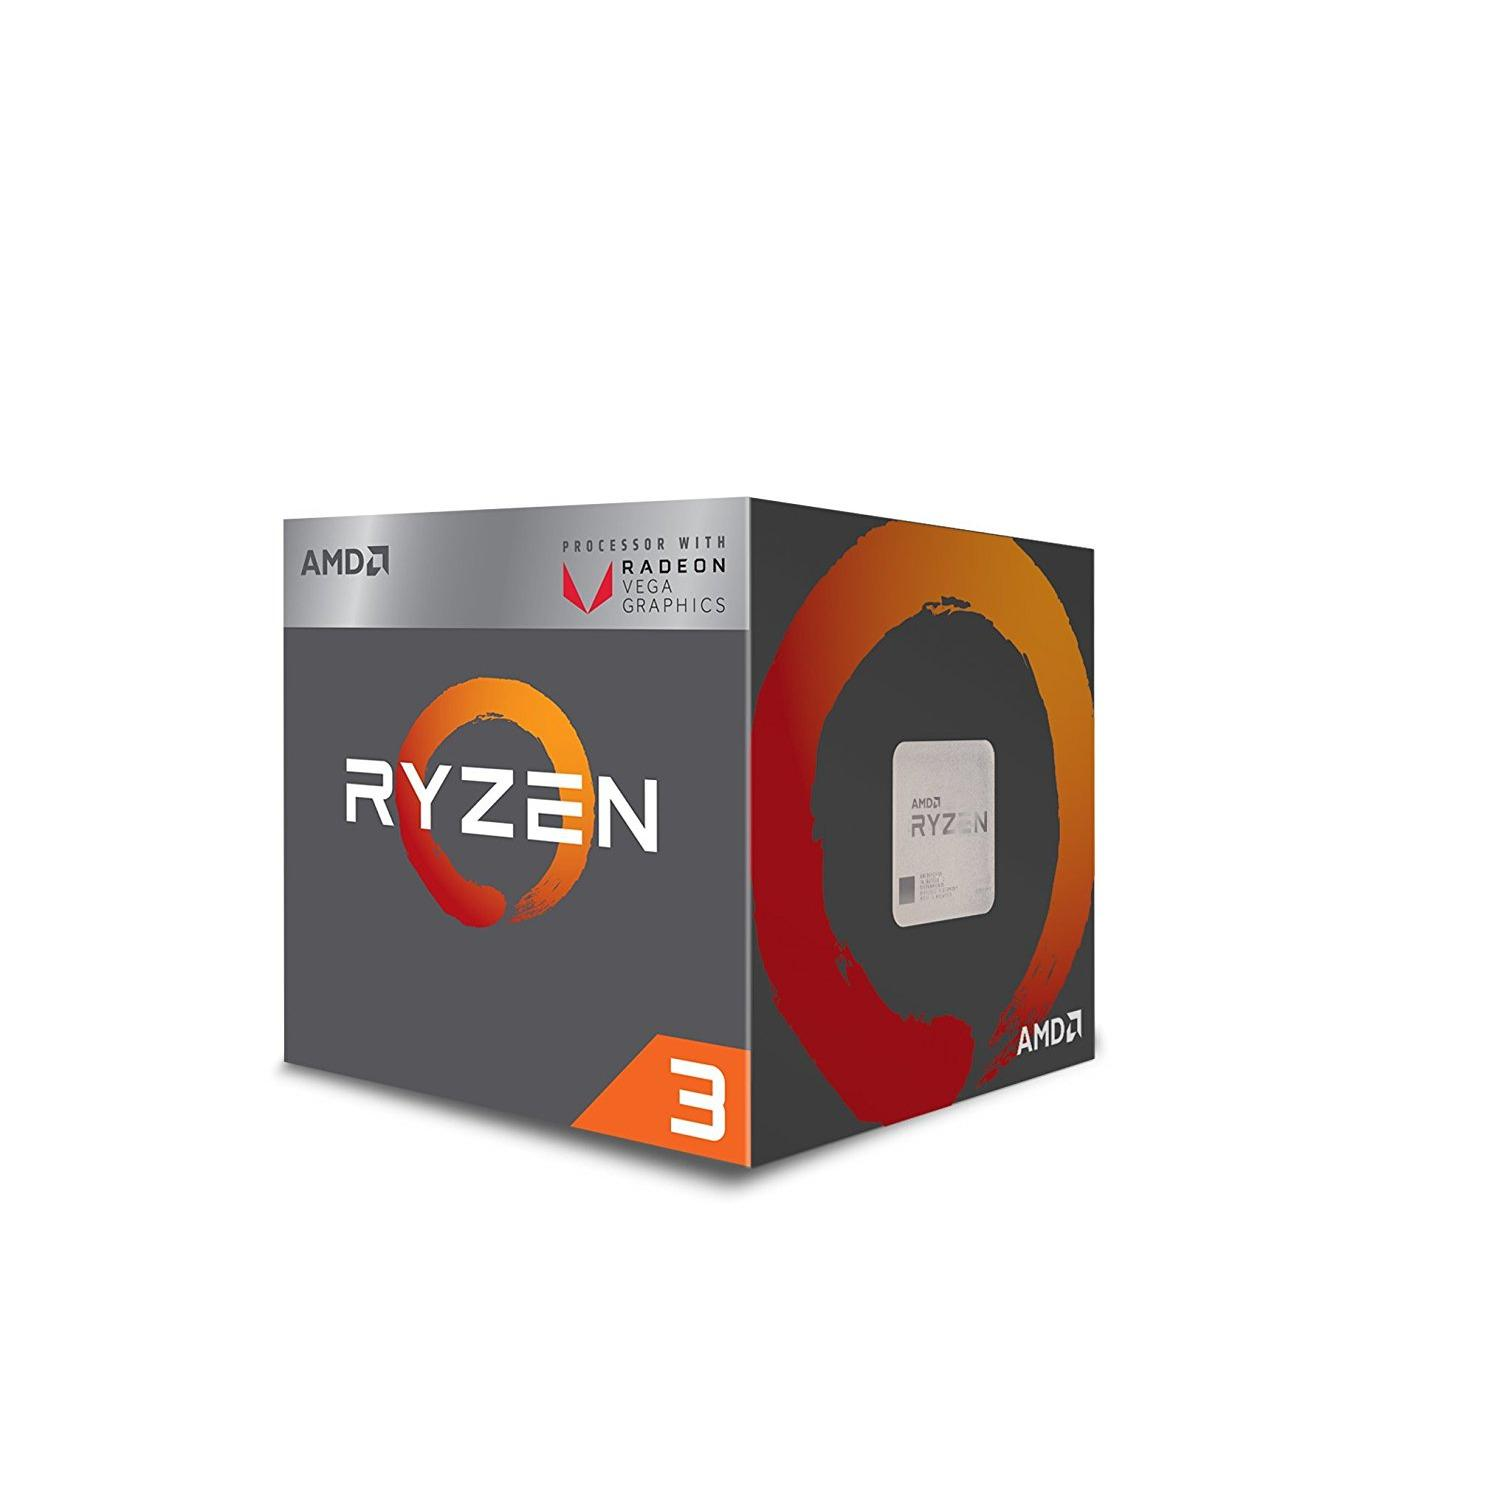 Amd Ryzen 3 2200G 3 7Ghz 4C4T 65W 6Mb Cache Cpu With Radeon Vega 8 Graphics Am4 Socket With Wraith Stealth Cooler Price